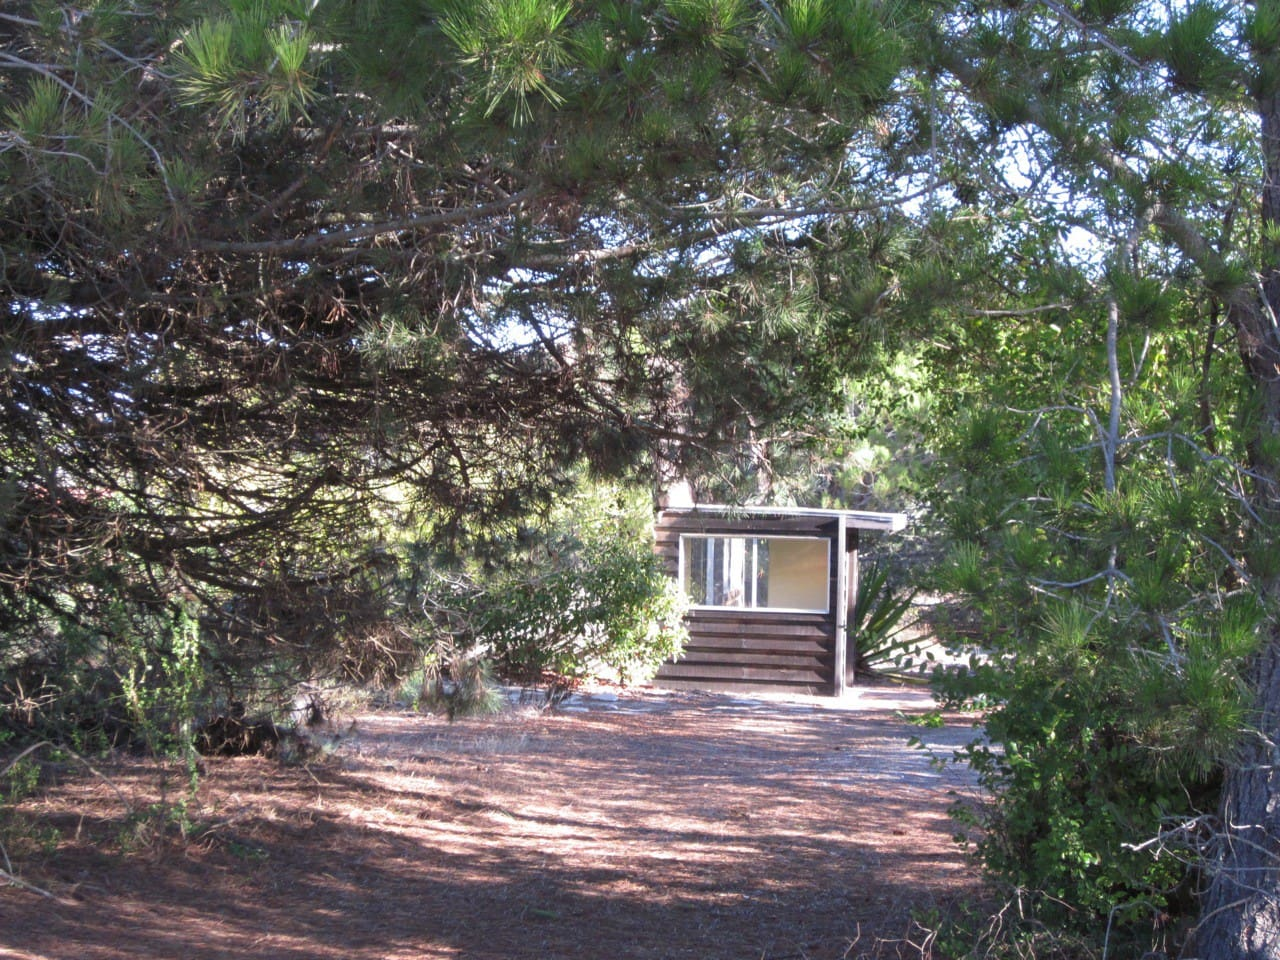 The guesthouse is in a quiet, secluded neighborhood, surrounded by oaks and chaparal.